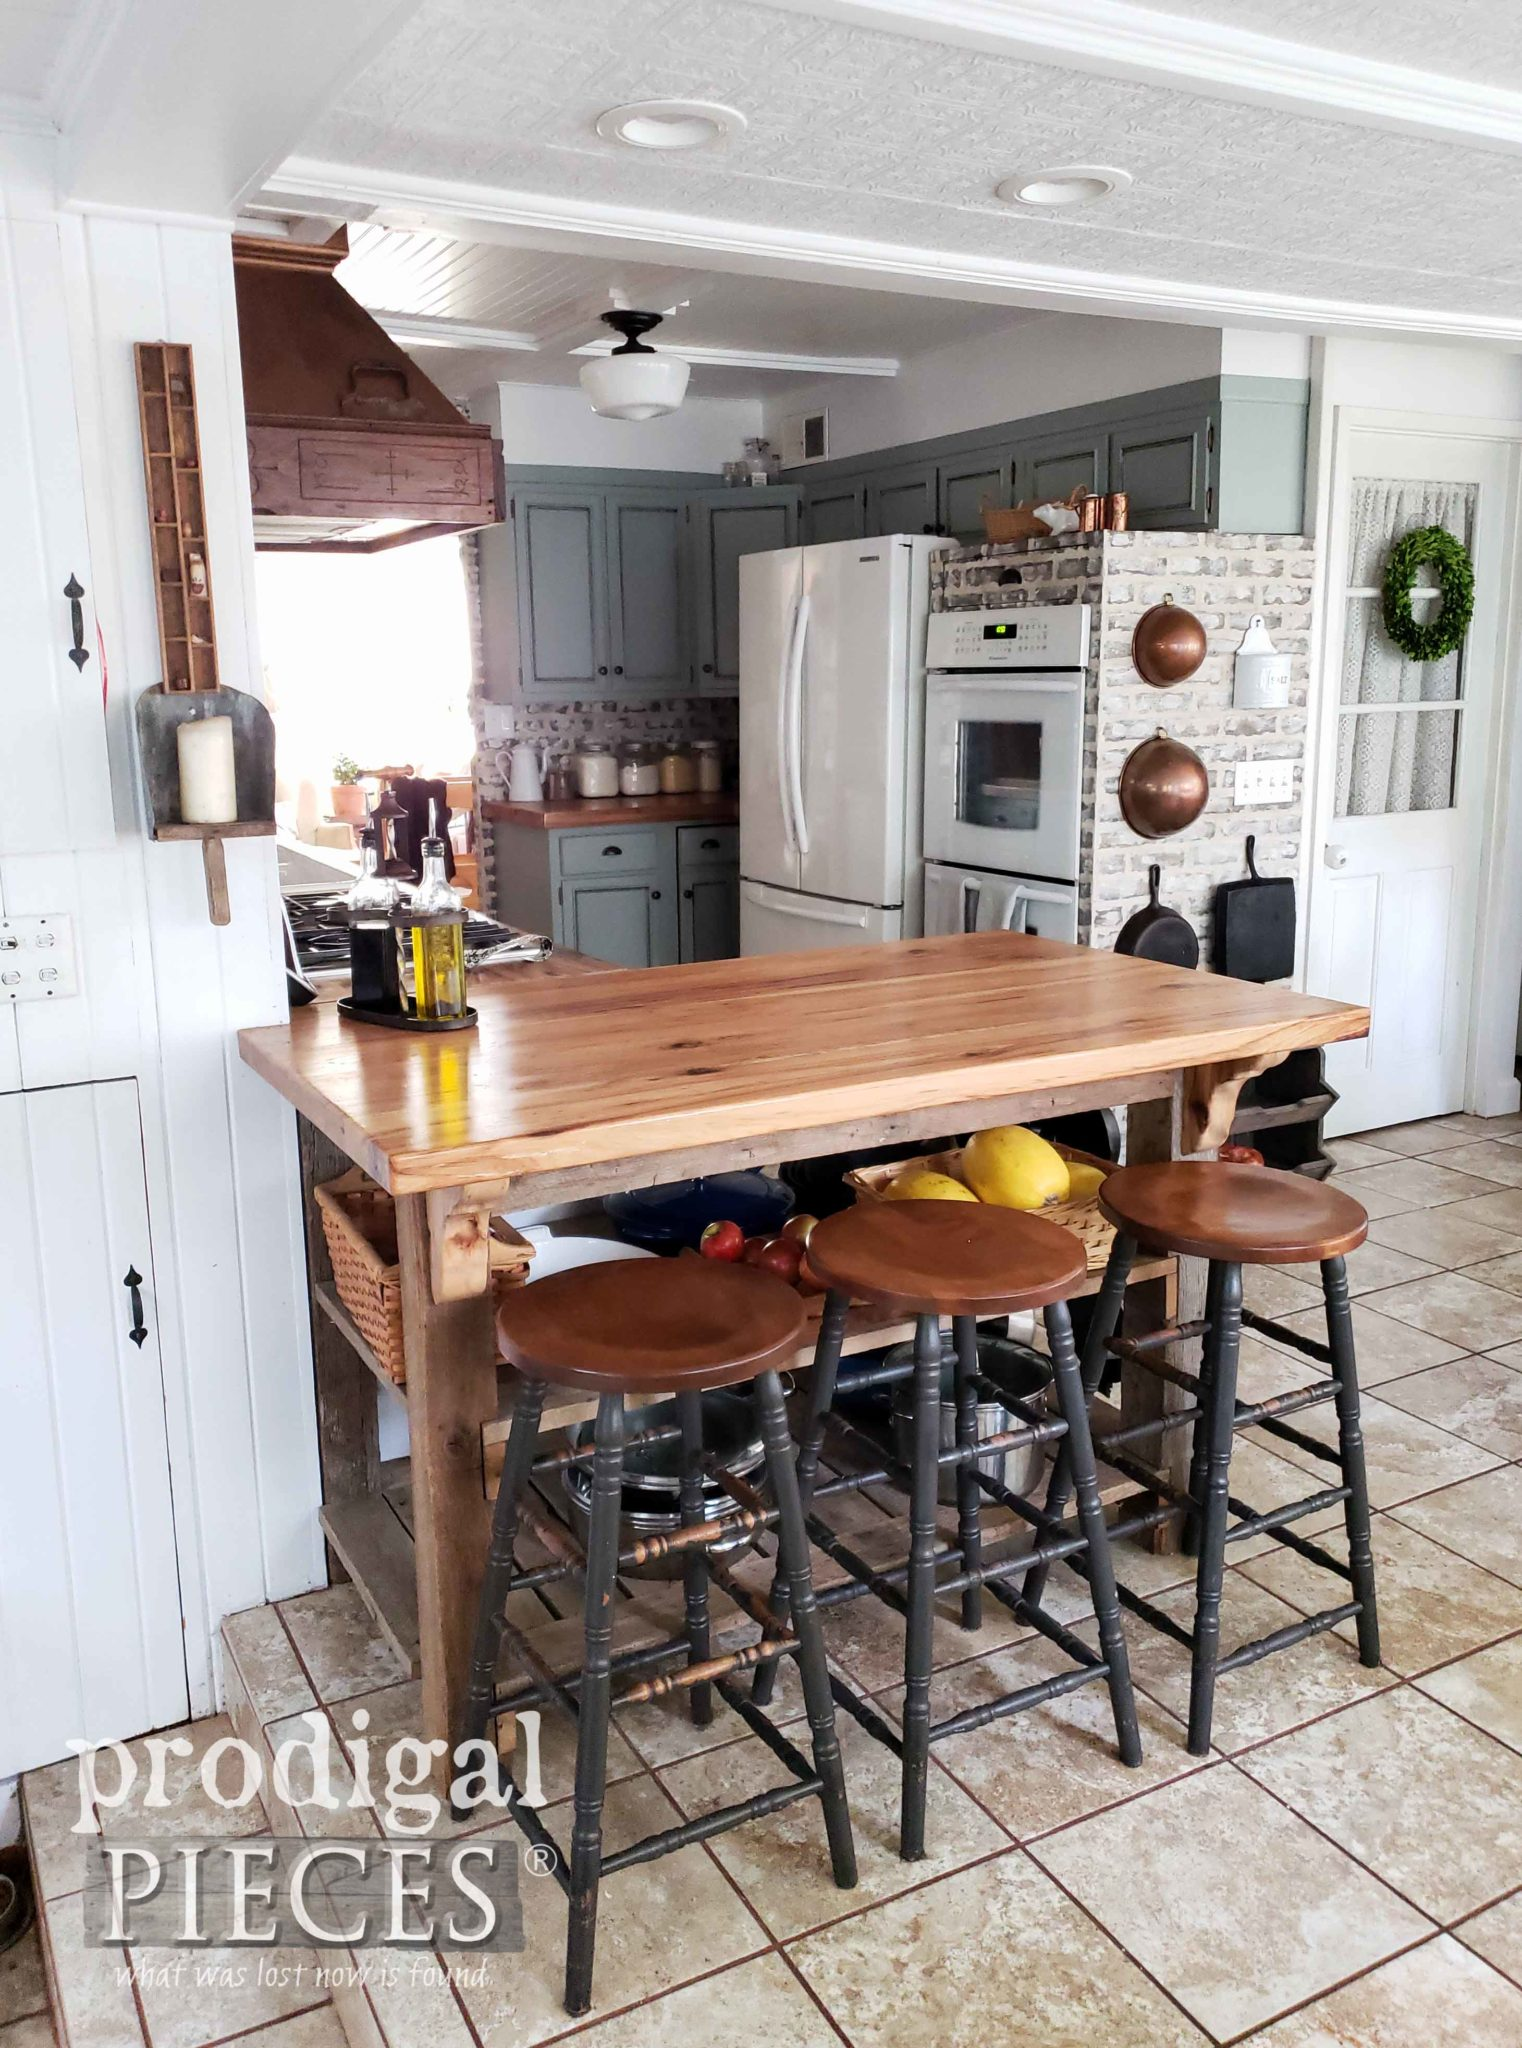 Industrial Farmhouse Kitchen Remodel with DIY Design by Larissa of Prodigal Pieces | prodigalpieces.com